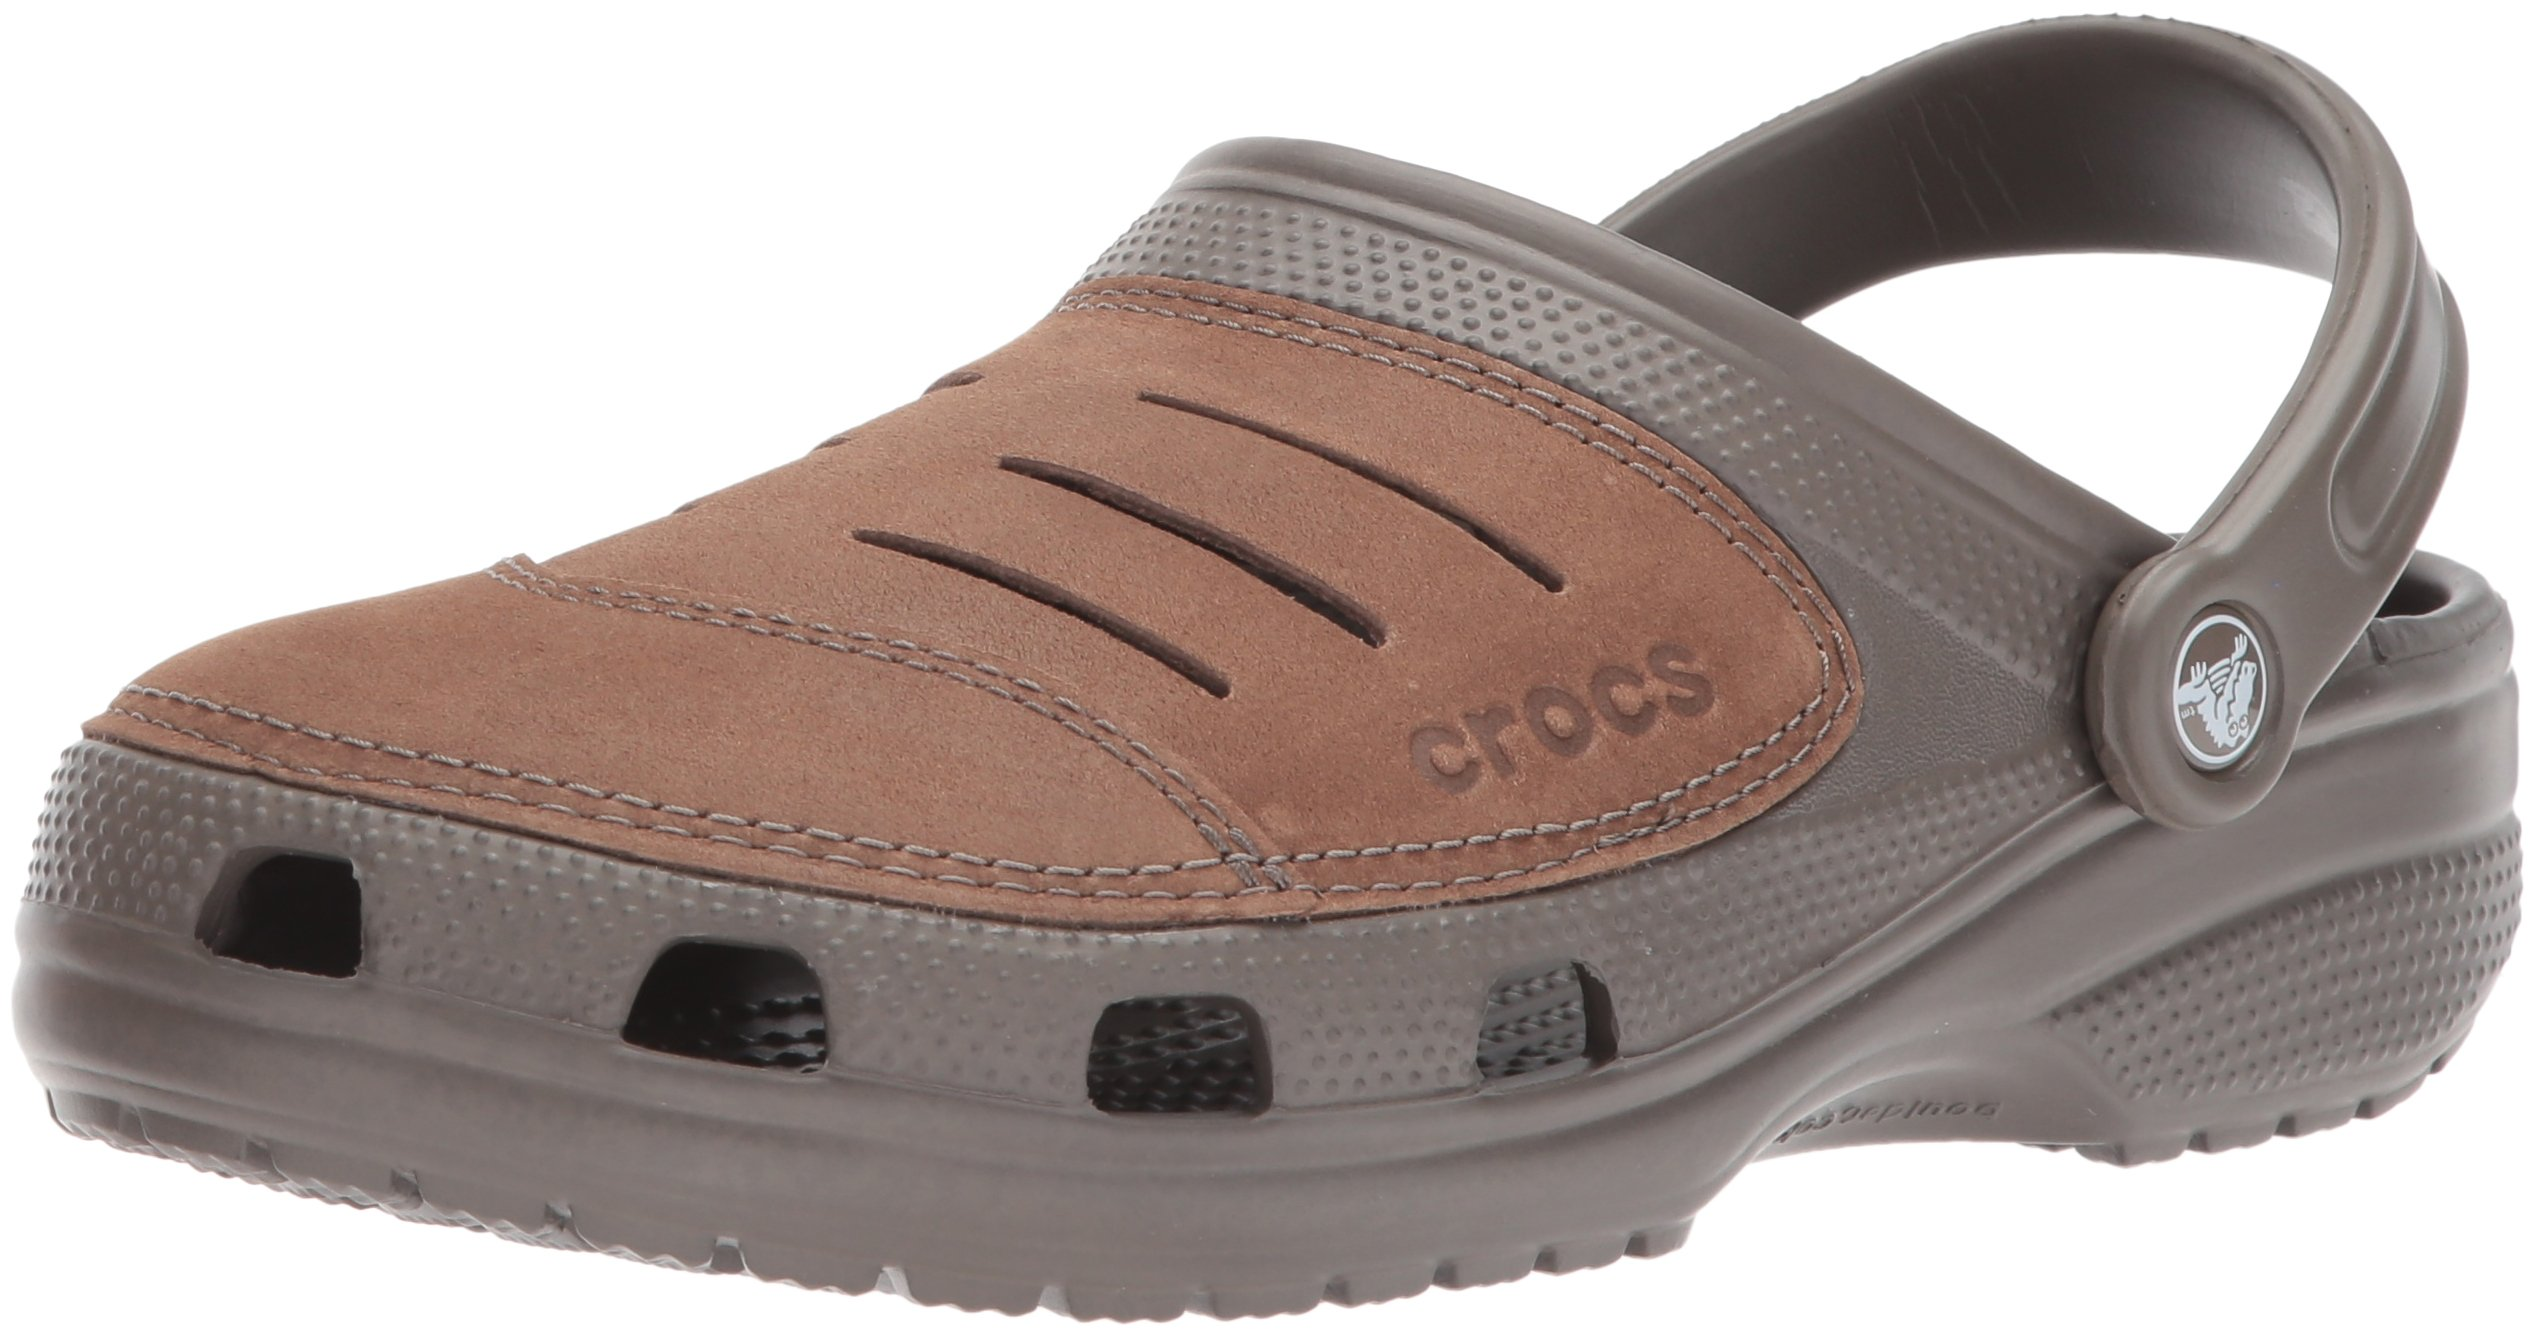 Crocs Men's 11038 Bogota Clog,Chocolate/Chocolate,11 M US by Crocs